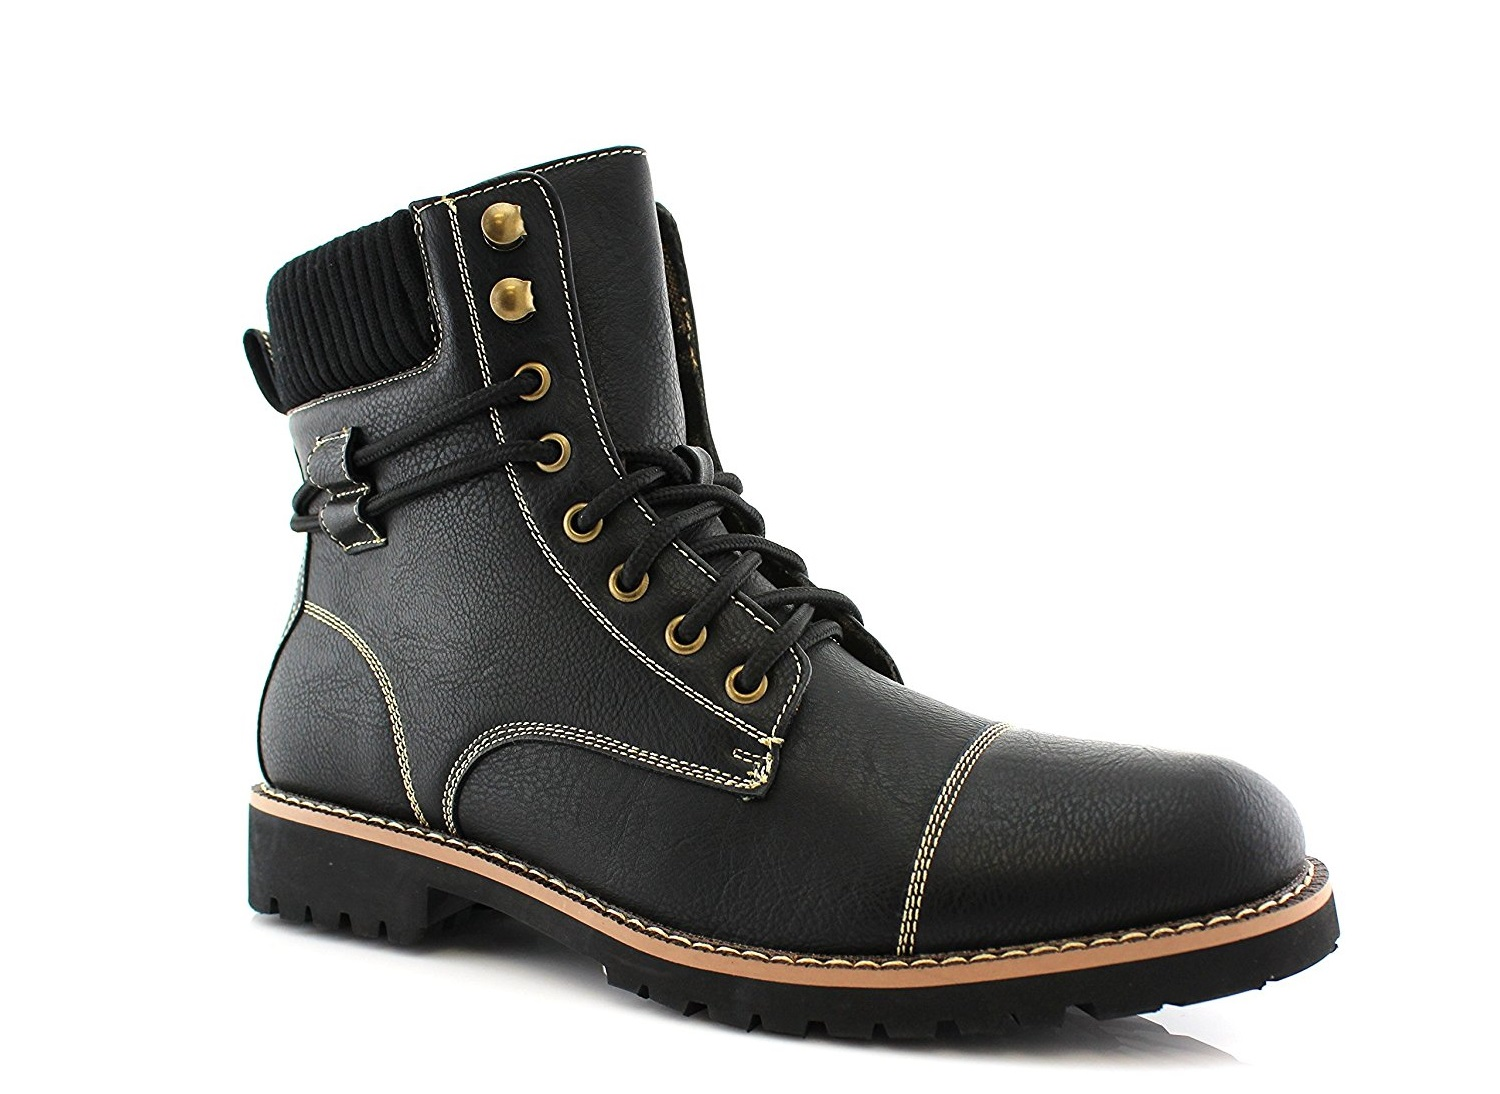 Polar NICHOLAS Men's Boots For Work or Casual Wear